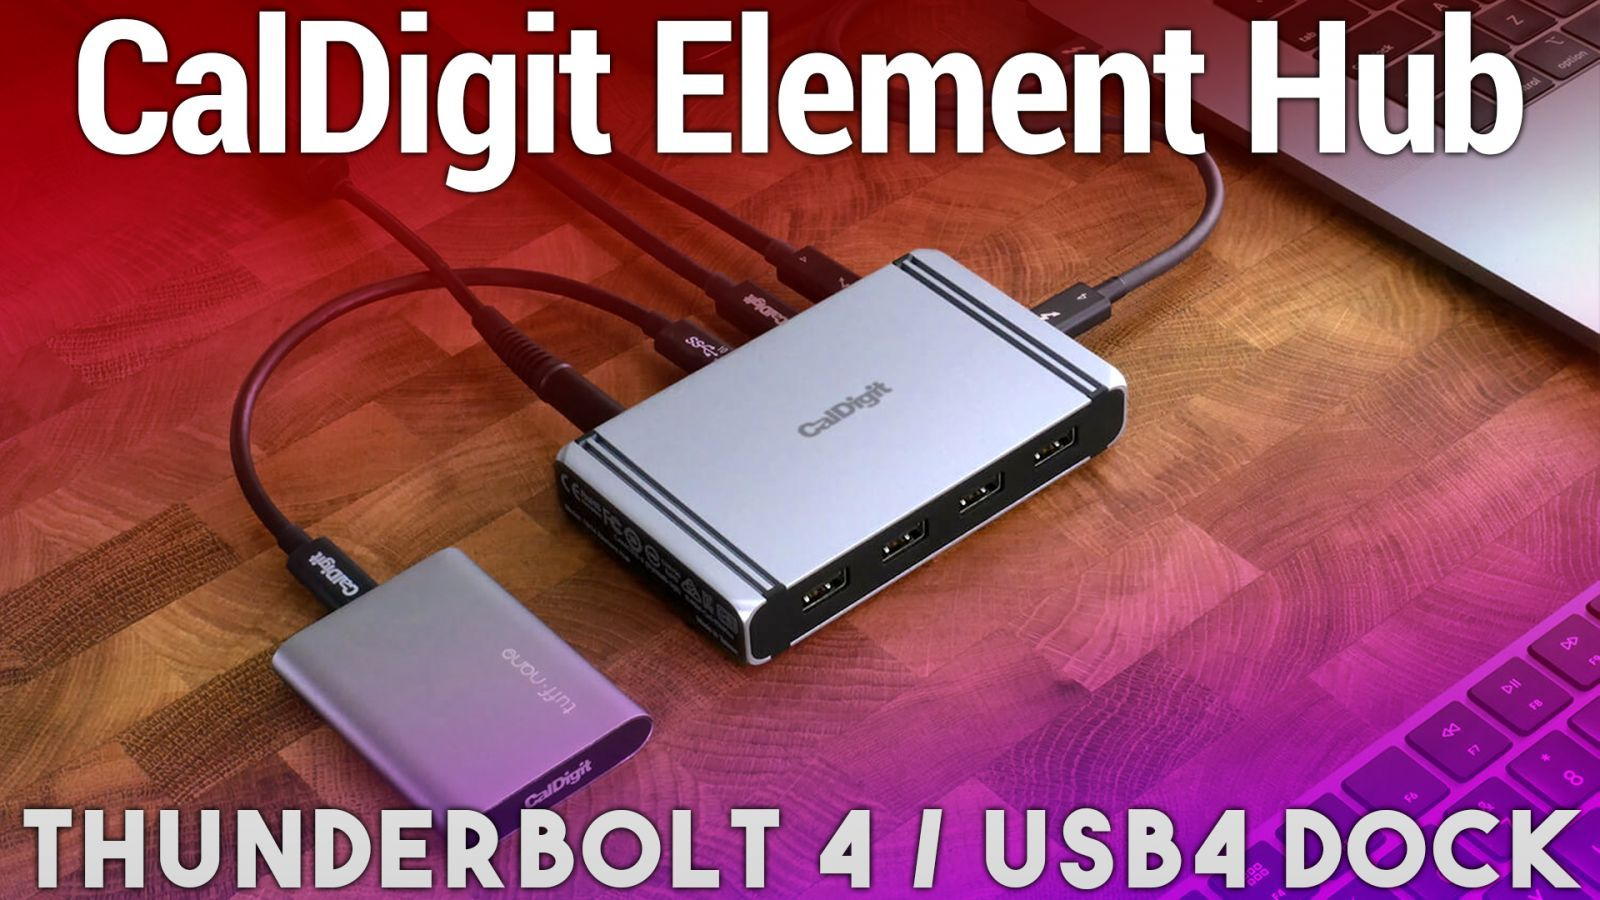 CalDigit Thunderbolt 4 / USB4 Element Hub Review - Add More 7 Ports to Your Mac, iPad, or PC